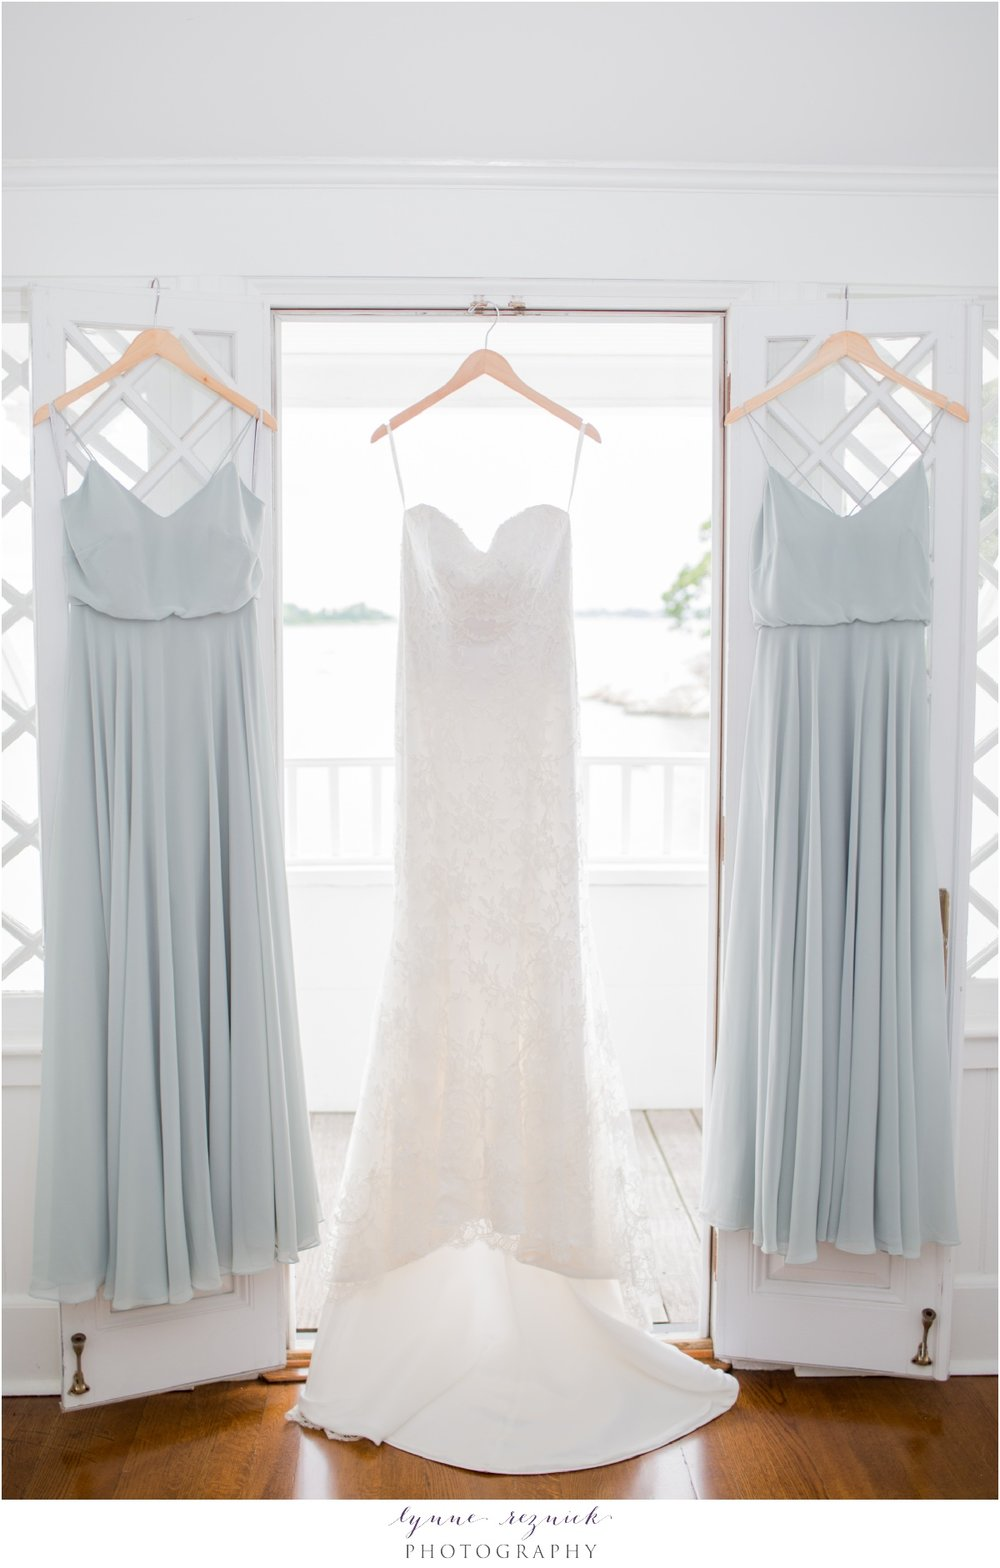 stunning bridal gown and bridesmaids dresses for chic nautical wedding at belle haven club in greenwich CT